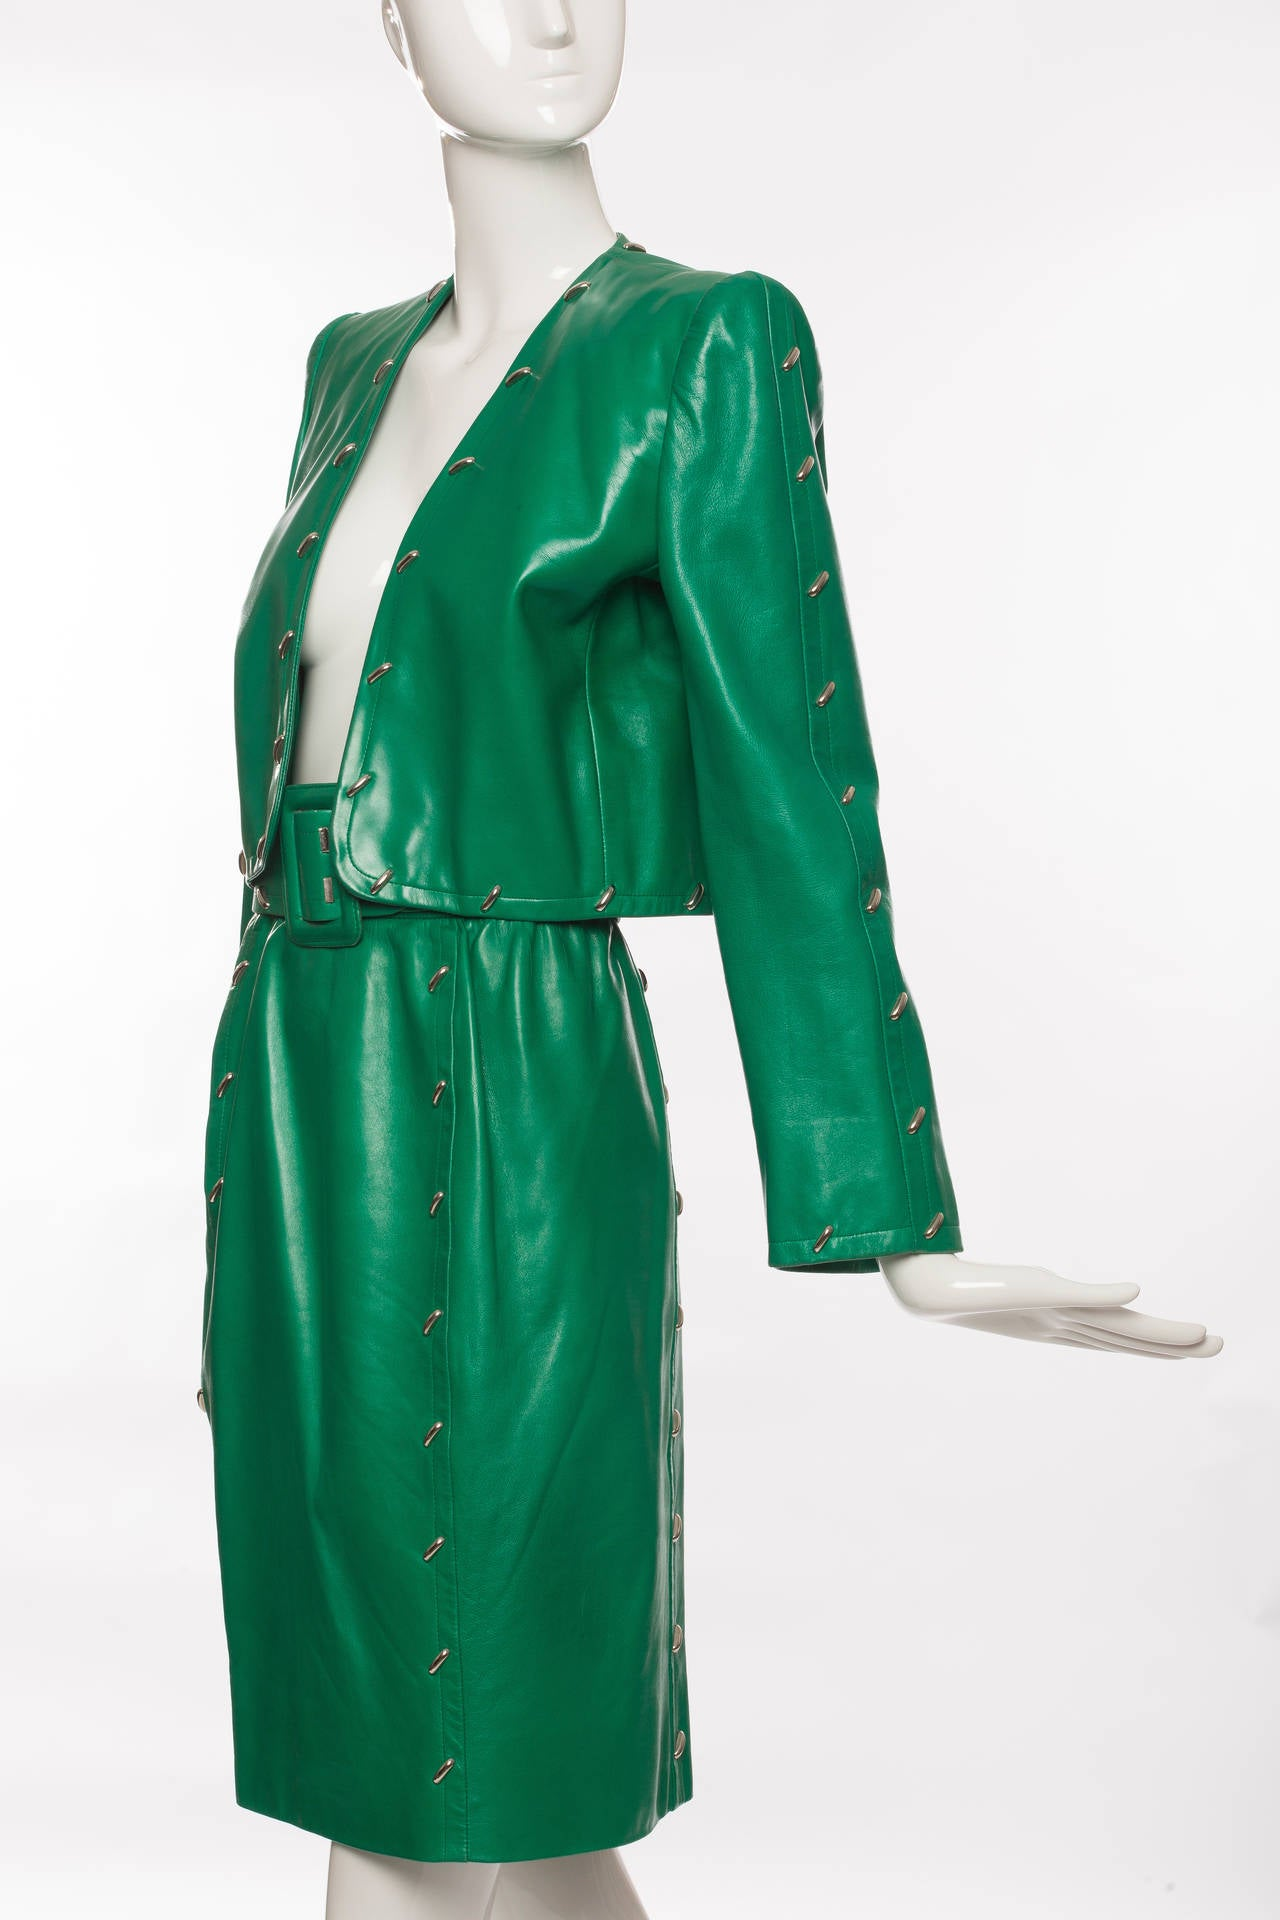 Givenchy Couture Green Leather Studded Skirt Suit Circa